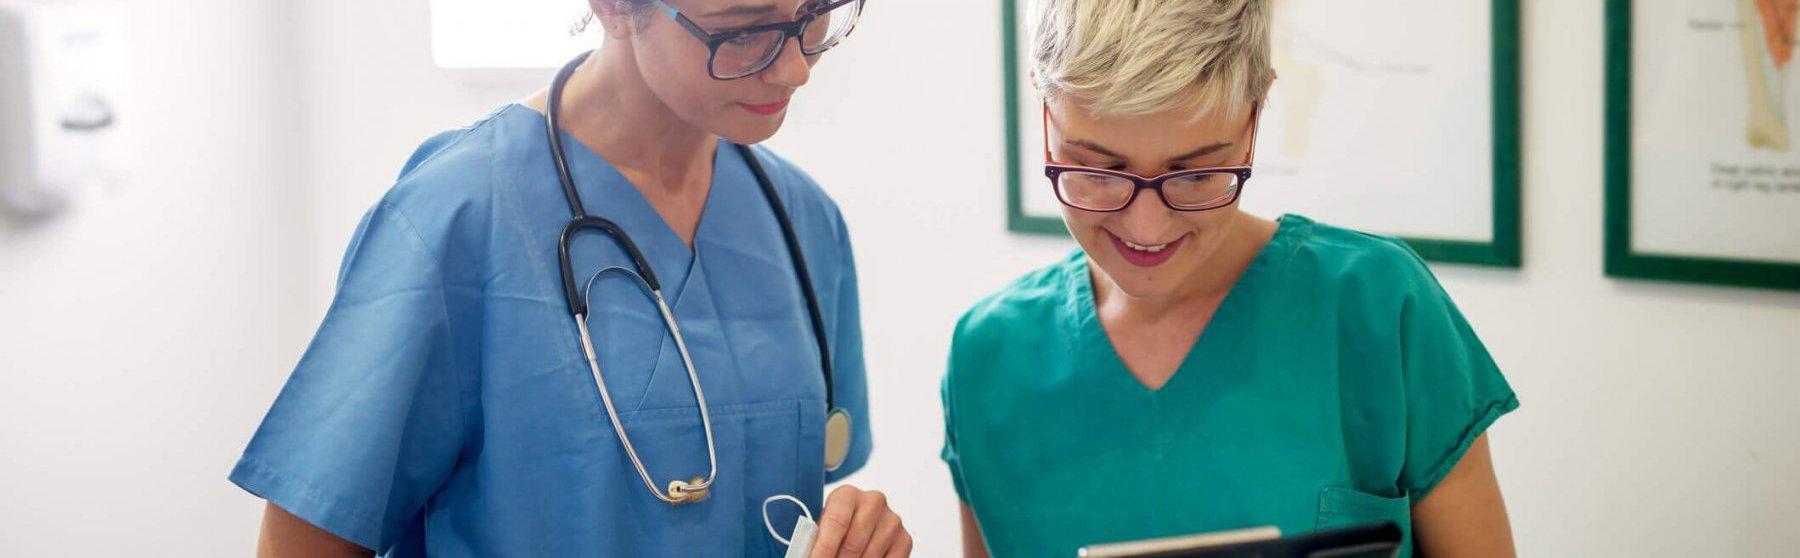 Nurse Management vs Nurse Leadership: What's the Difference?